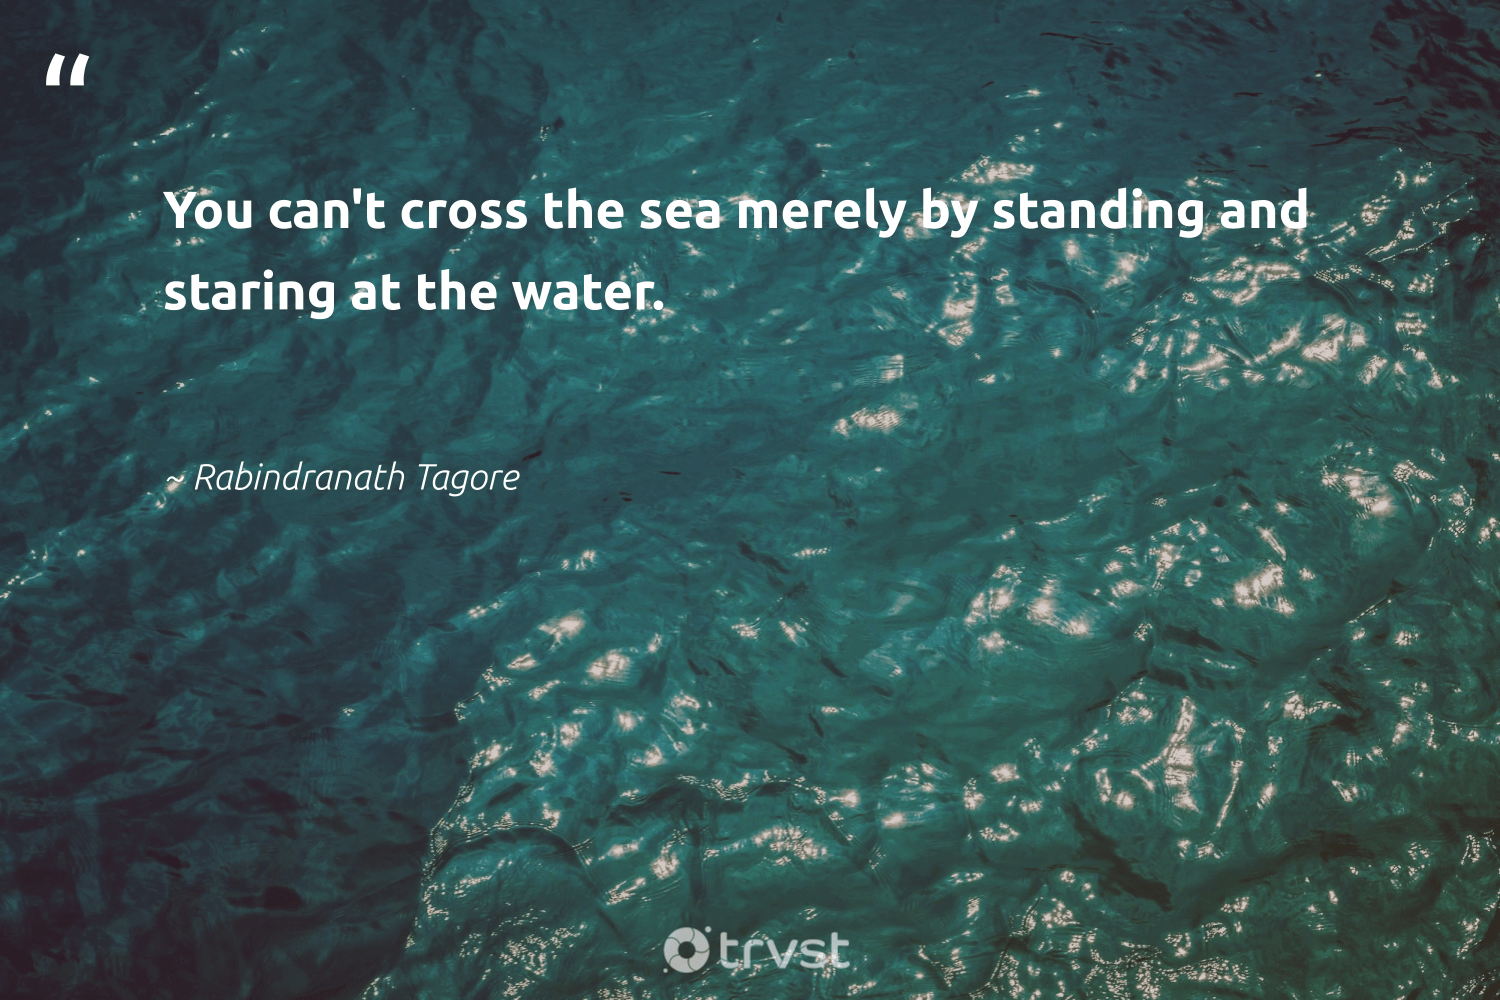 """You can't cross the sea merely by standing and staring at the water.""  - Rabindranath Tagore #trvst #quotes #water #river #dogood #wildernessnation #ecoconscious #ocean #weareallone #sustainableliving #dosomething #saveourocean"